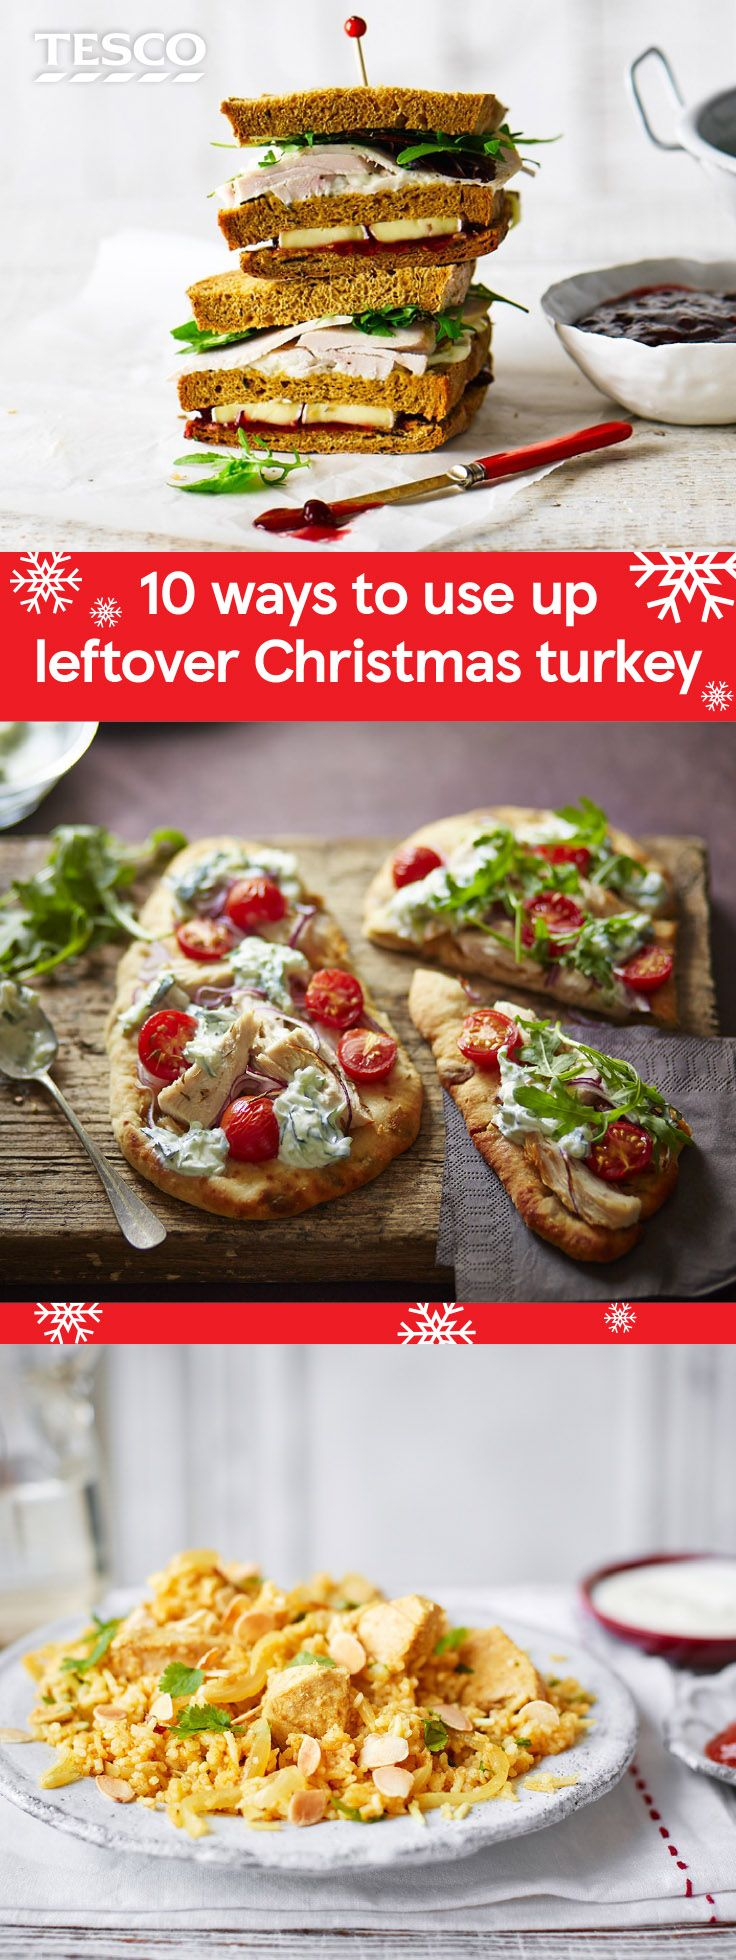 Turn leftover Christmas turkey into a delicious meal with these easy leftover recipes. Whether it's the ultimate Boxing Day turkey sandwich or a fragrant turkey curry, these recipes will help you make the most of your leftovers this year. | Tesco